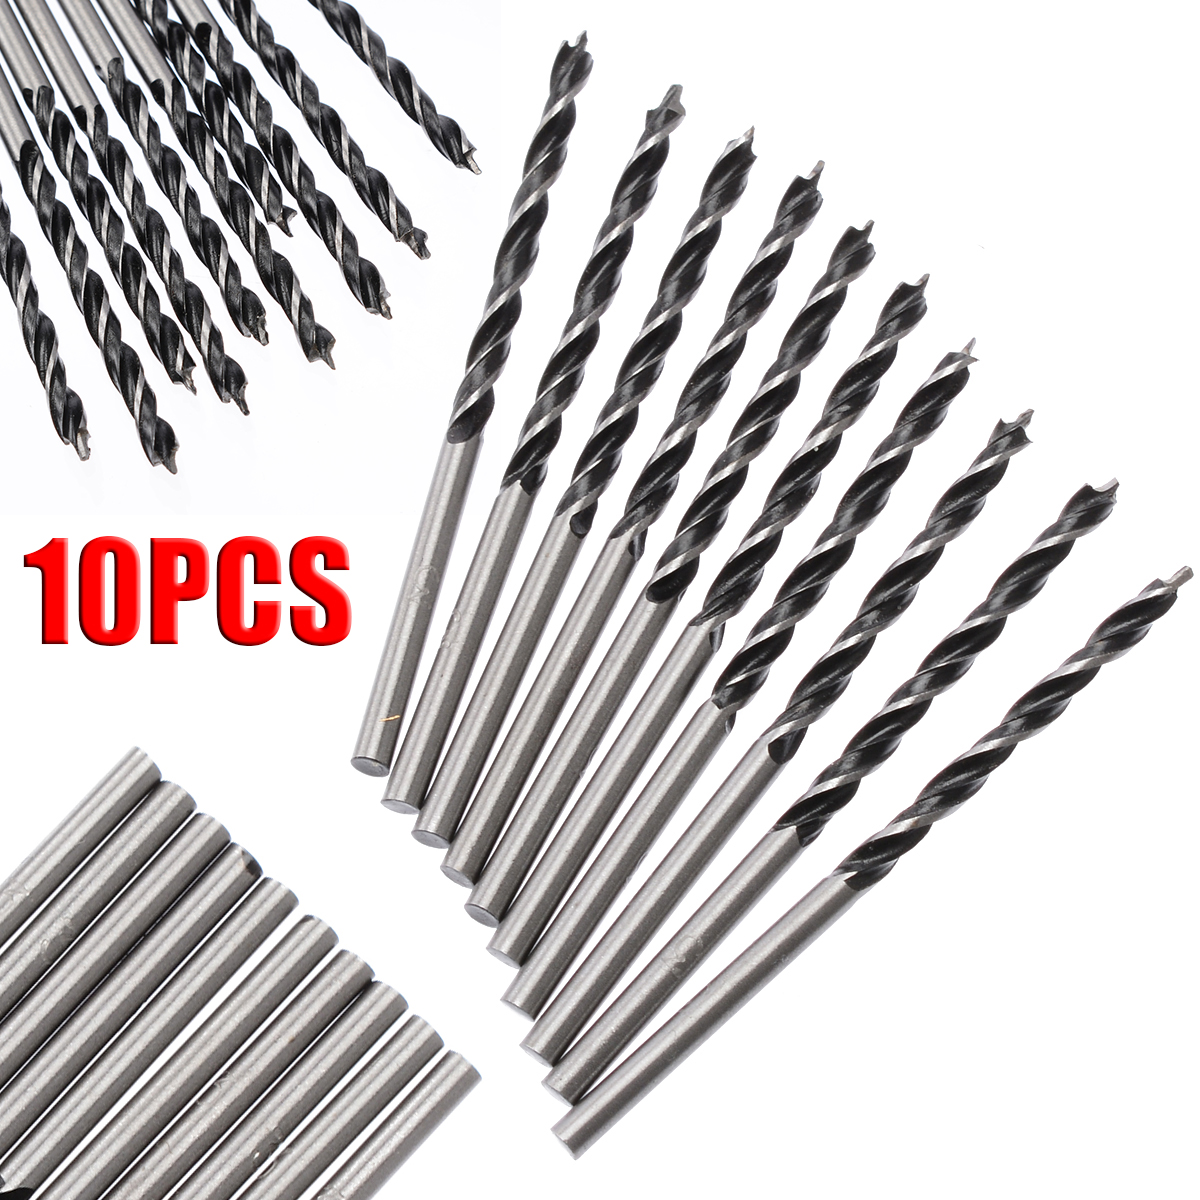 10pcs/Set 3mm Diam Twist Drill Bit 58mm Length Wood Spiral Drill Bits With Center Point High Strength Woodworking Drilling Tool